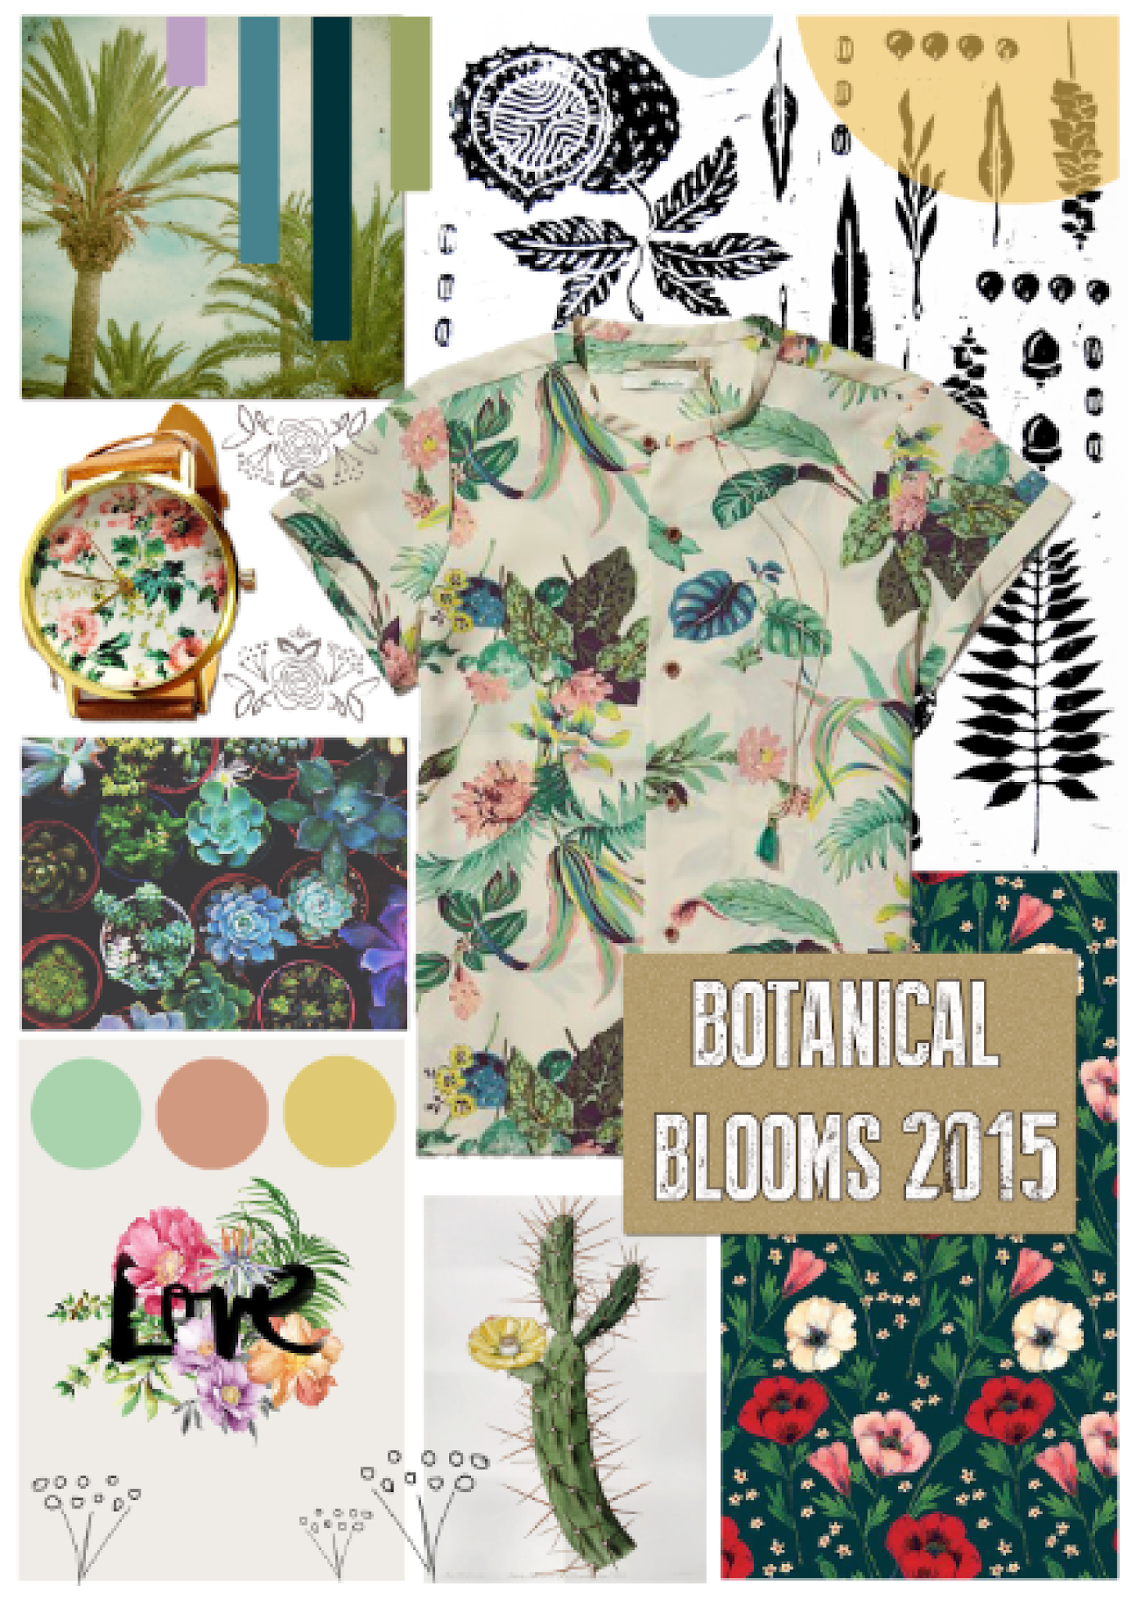 Ma Bicyclette: Design Spring-Summer 2015 | Botanical Blooms Trend Images from top to bottom, left to right - Cassia Beck / Victoria Clare Gray / FreeForMe /   Scotch & Soda / Justina Blakeney / Karen Hofstetter / TheBlackVinyl / Phoebe Wahl  Stylesheet by Stephanie Bertenshaw from Felt Mountain Studios for Ma Bicyclette